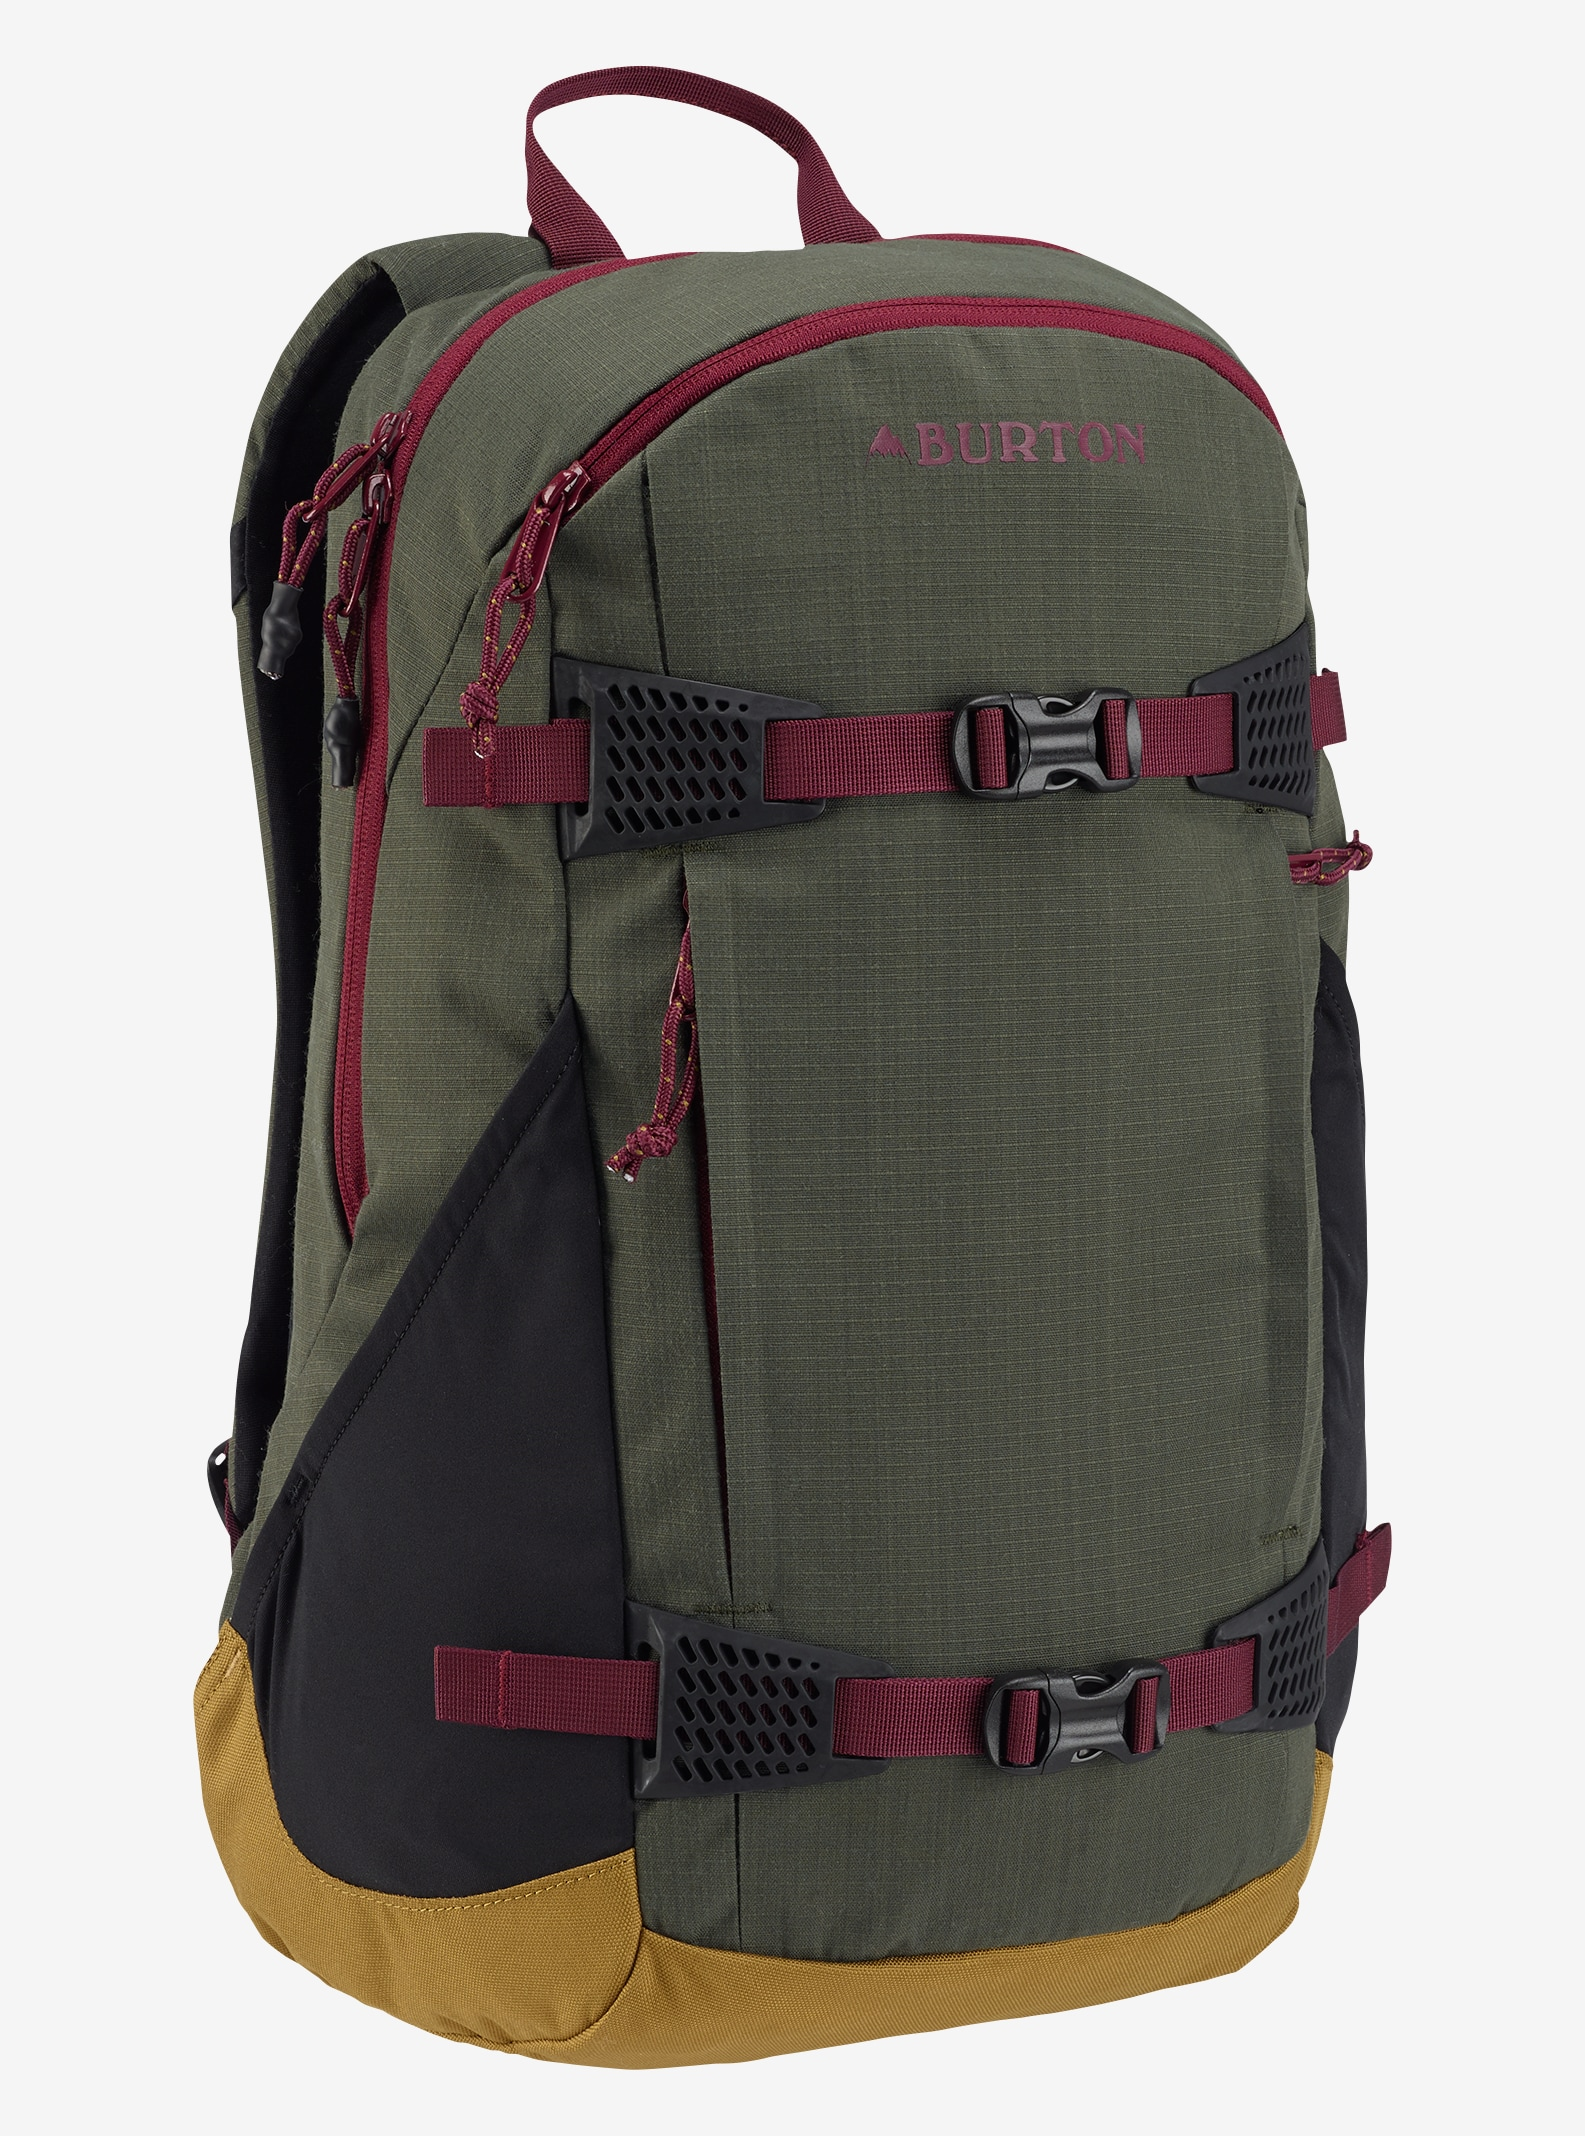 Burton Women's Day Hiker 23L Backpack shown in Forest Night Ripstop